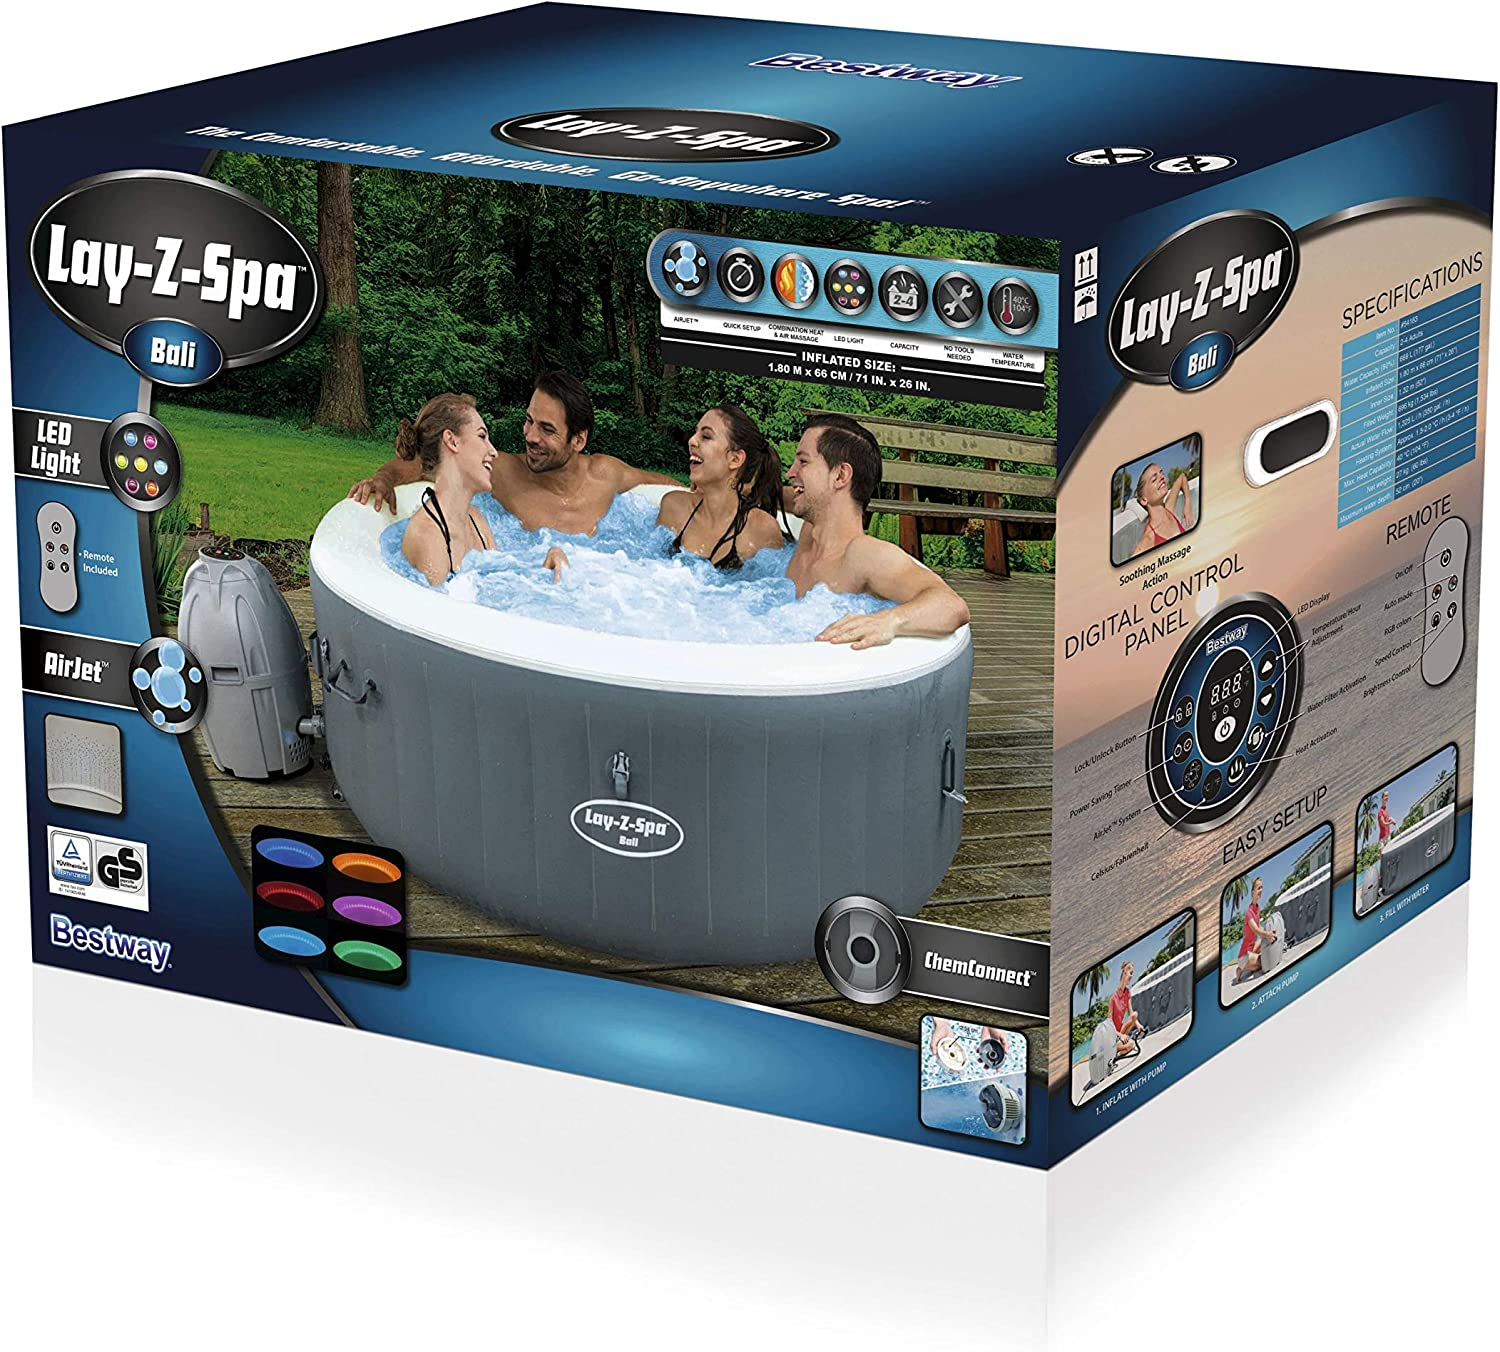 BESTWAY 54183 - Spa Hinchable Lay-Z-Spa Bali Para 4-6 personas Redondo: Amazon.es: Jardín